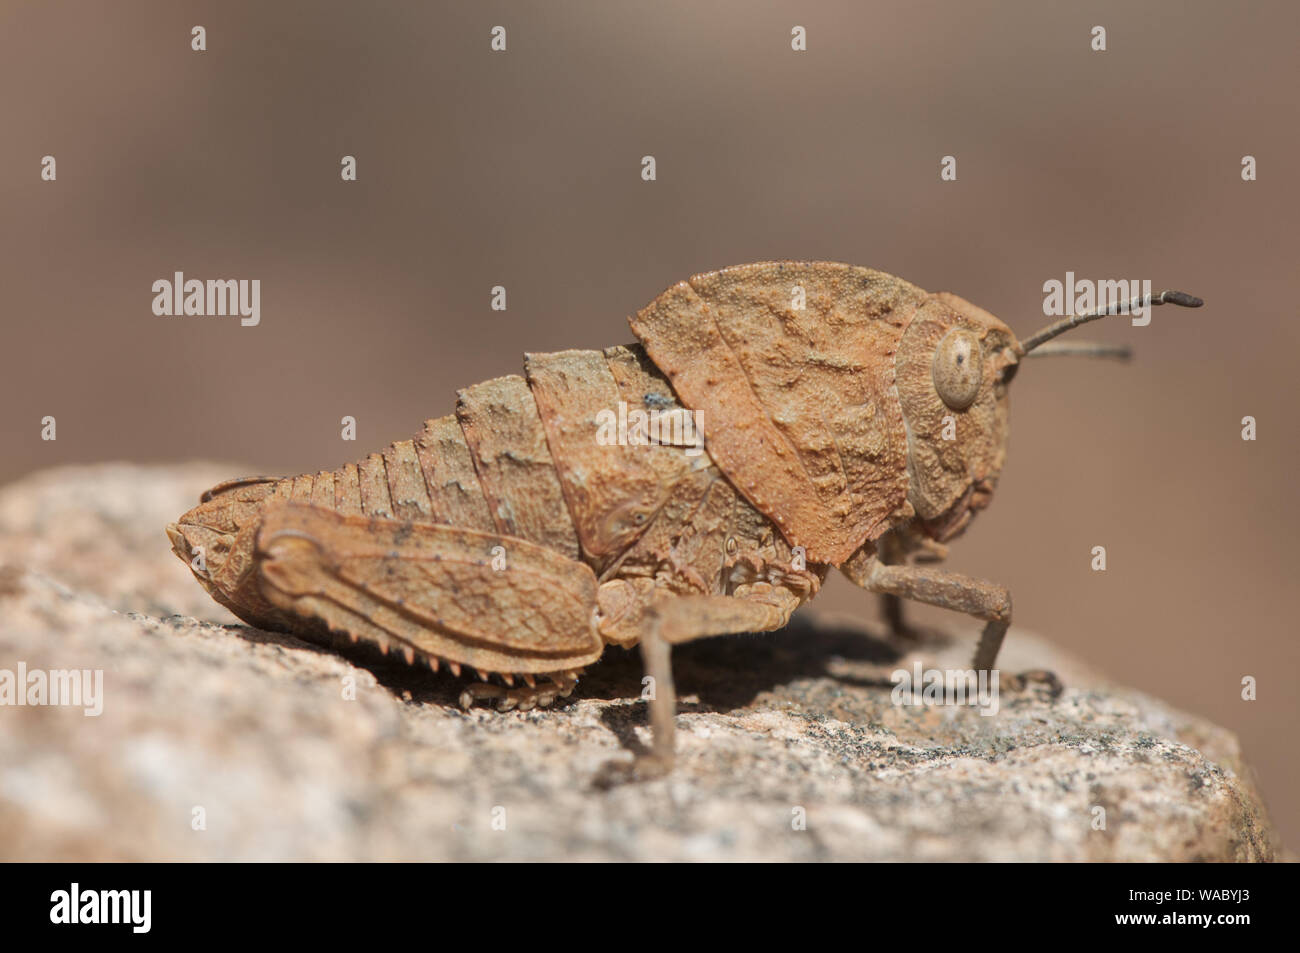 Ocnerodes fallaciosus grasshopper with vestigial wings with a mimicry that makes them look like a stone or a twig perched on a stone with a brown back Stock Photo